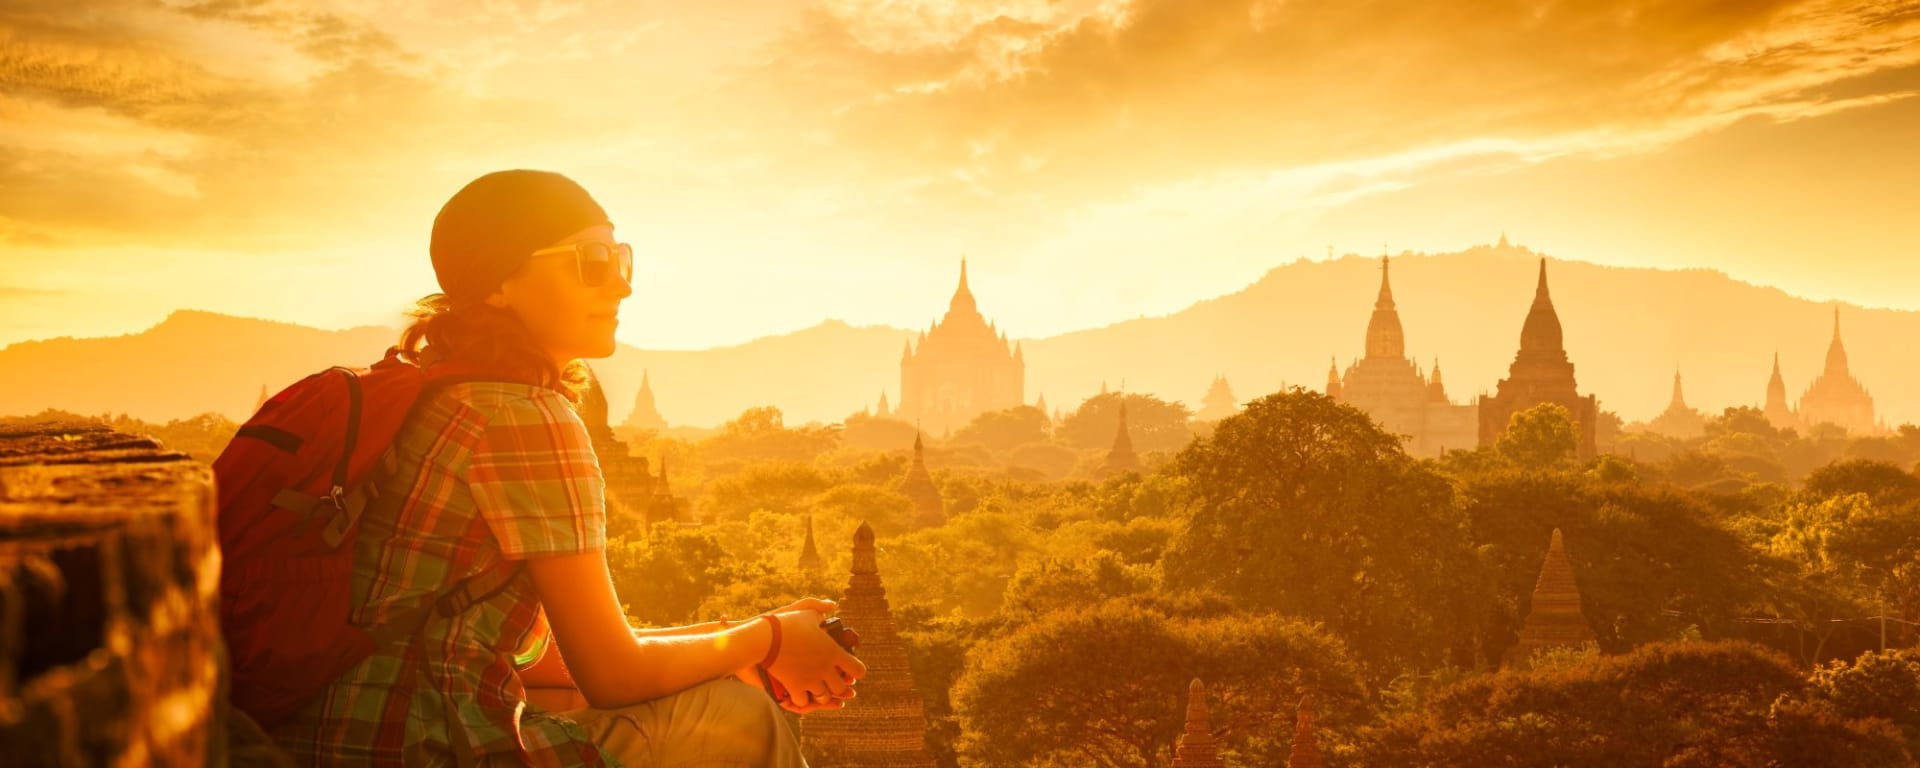 Myanmar aktiv erleben ab Yangon: Bagan Sunset with Traveller